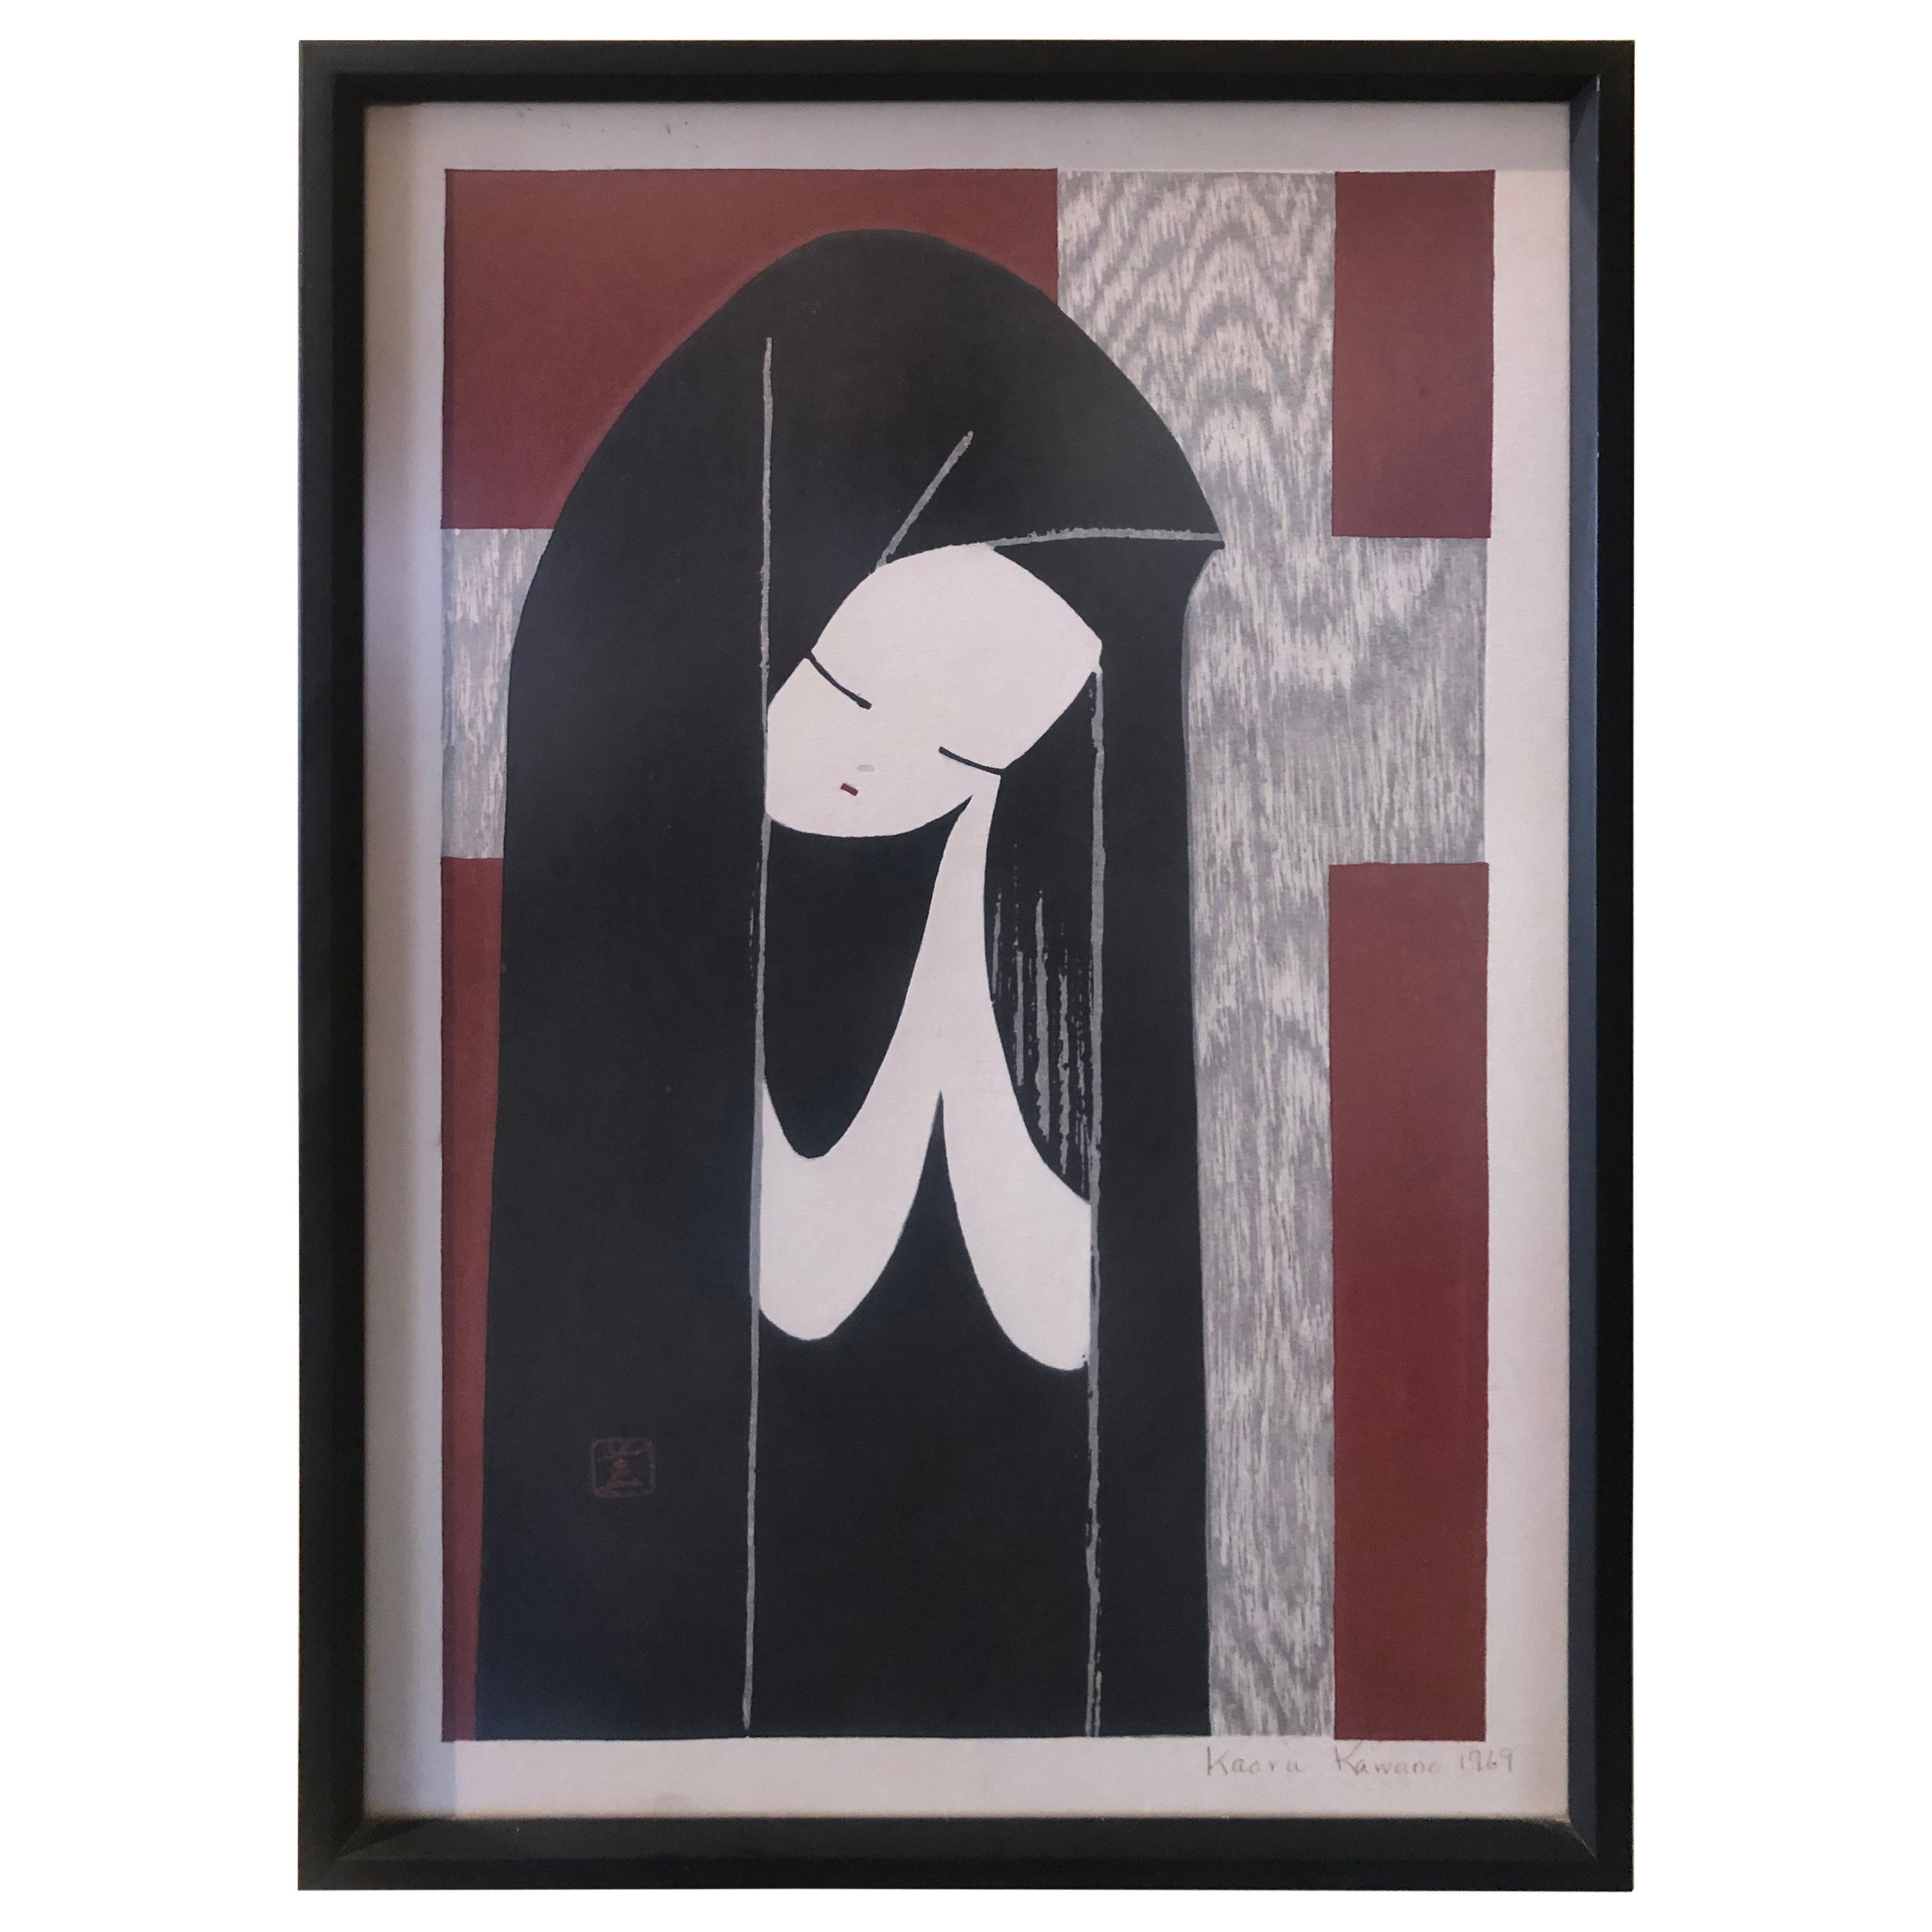 Midcentury Wood Block Print of Young Woman Praying by Kaoru Kawano